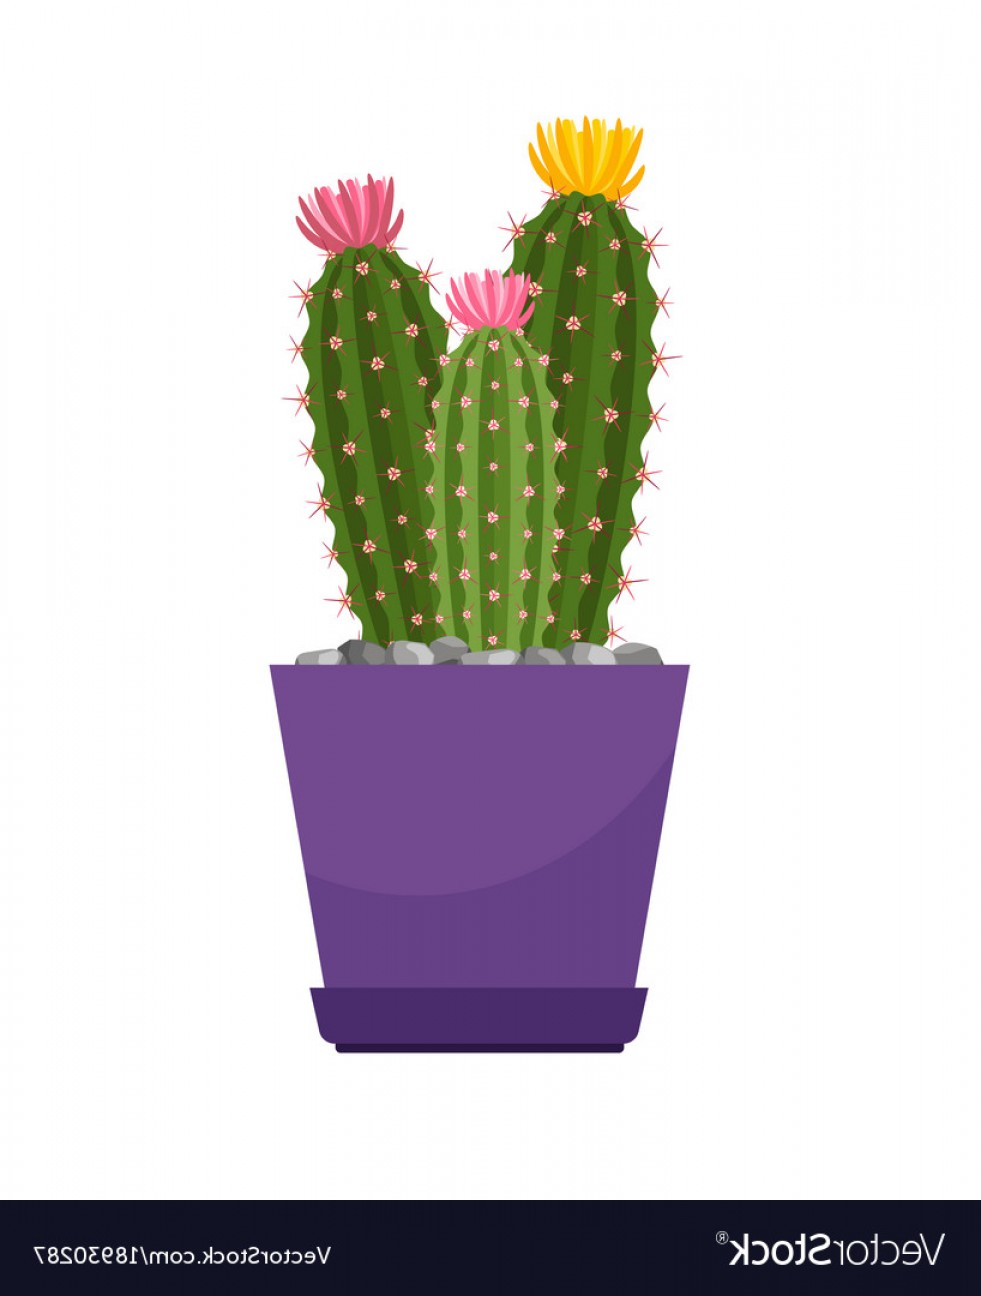 Cactus And Flower Vector: Cactus With Flowers House Plant Vector